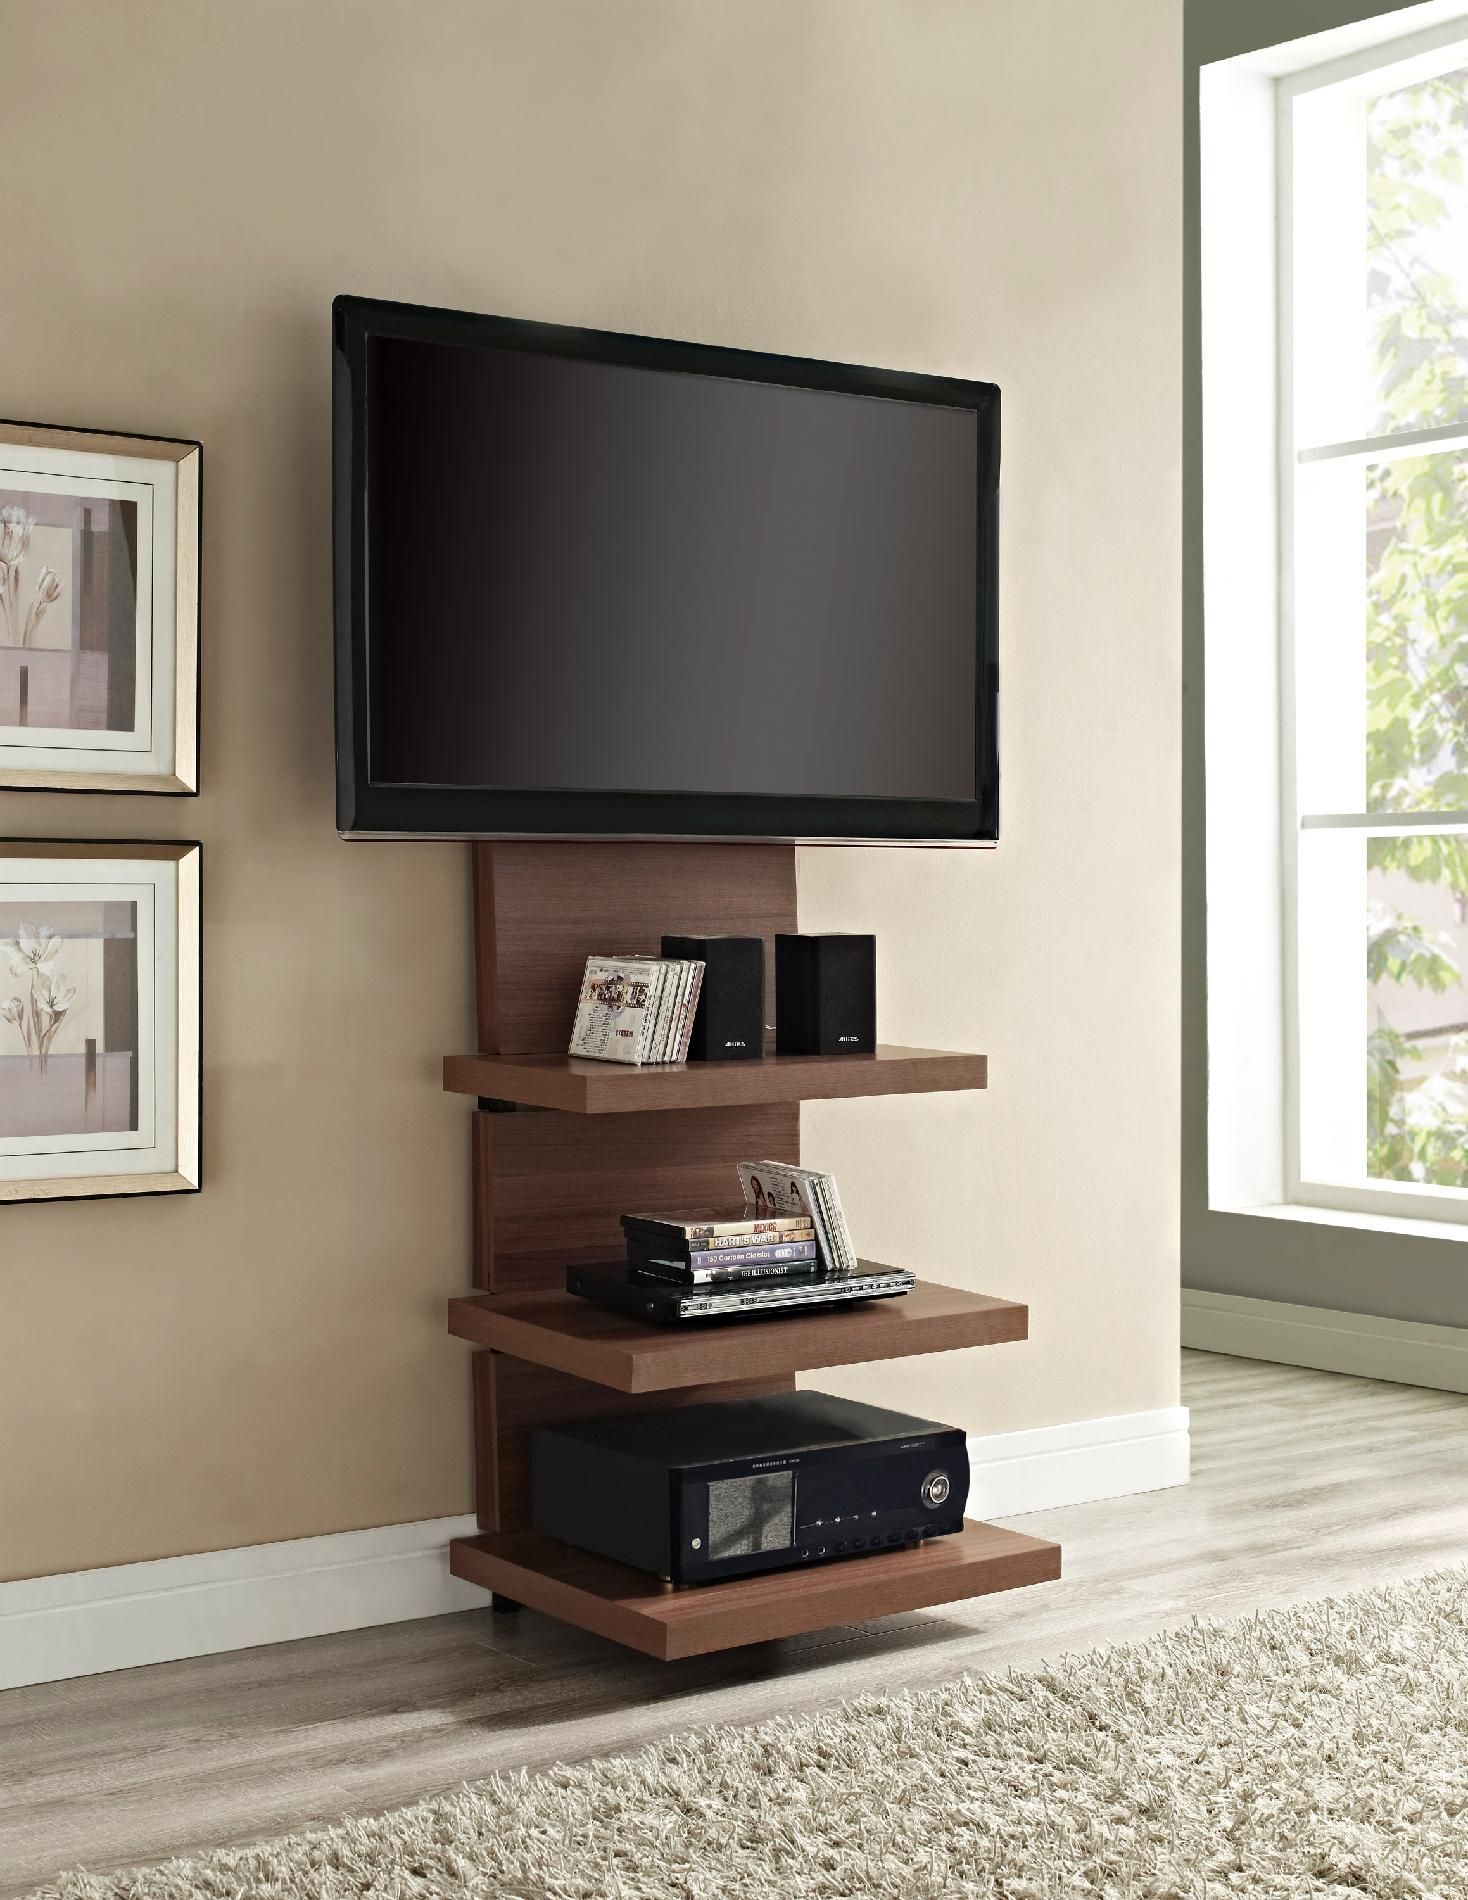 18 Chic and Modern TV Wall Mount Ideas for Living Room | Pinterest ...